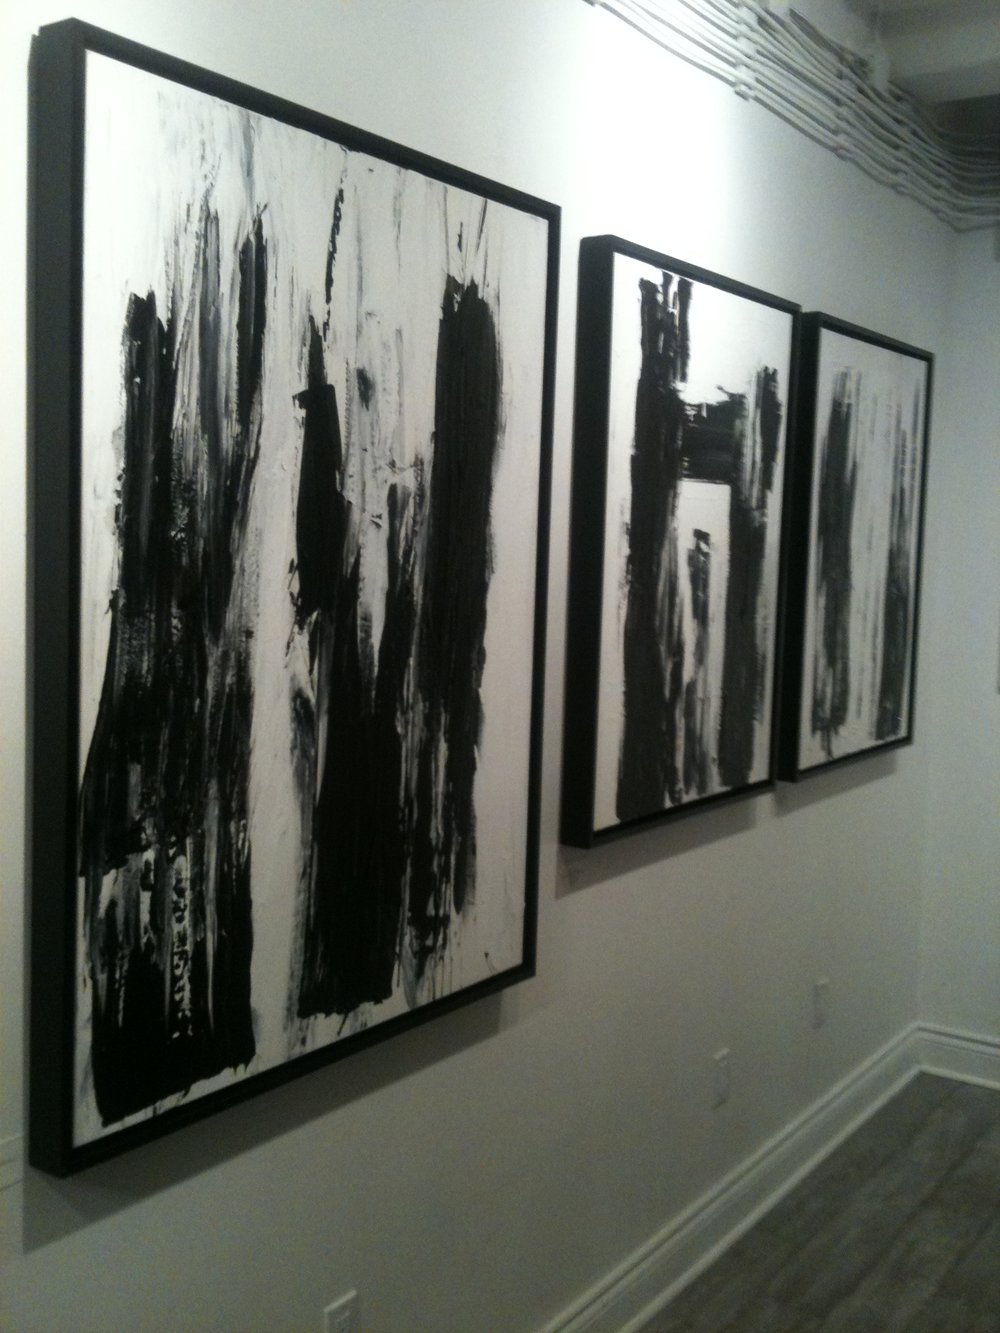 black and white series no.. 1 / acrylic on canvas / 48 in. x 36 in.